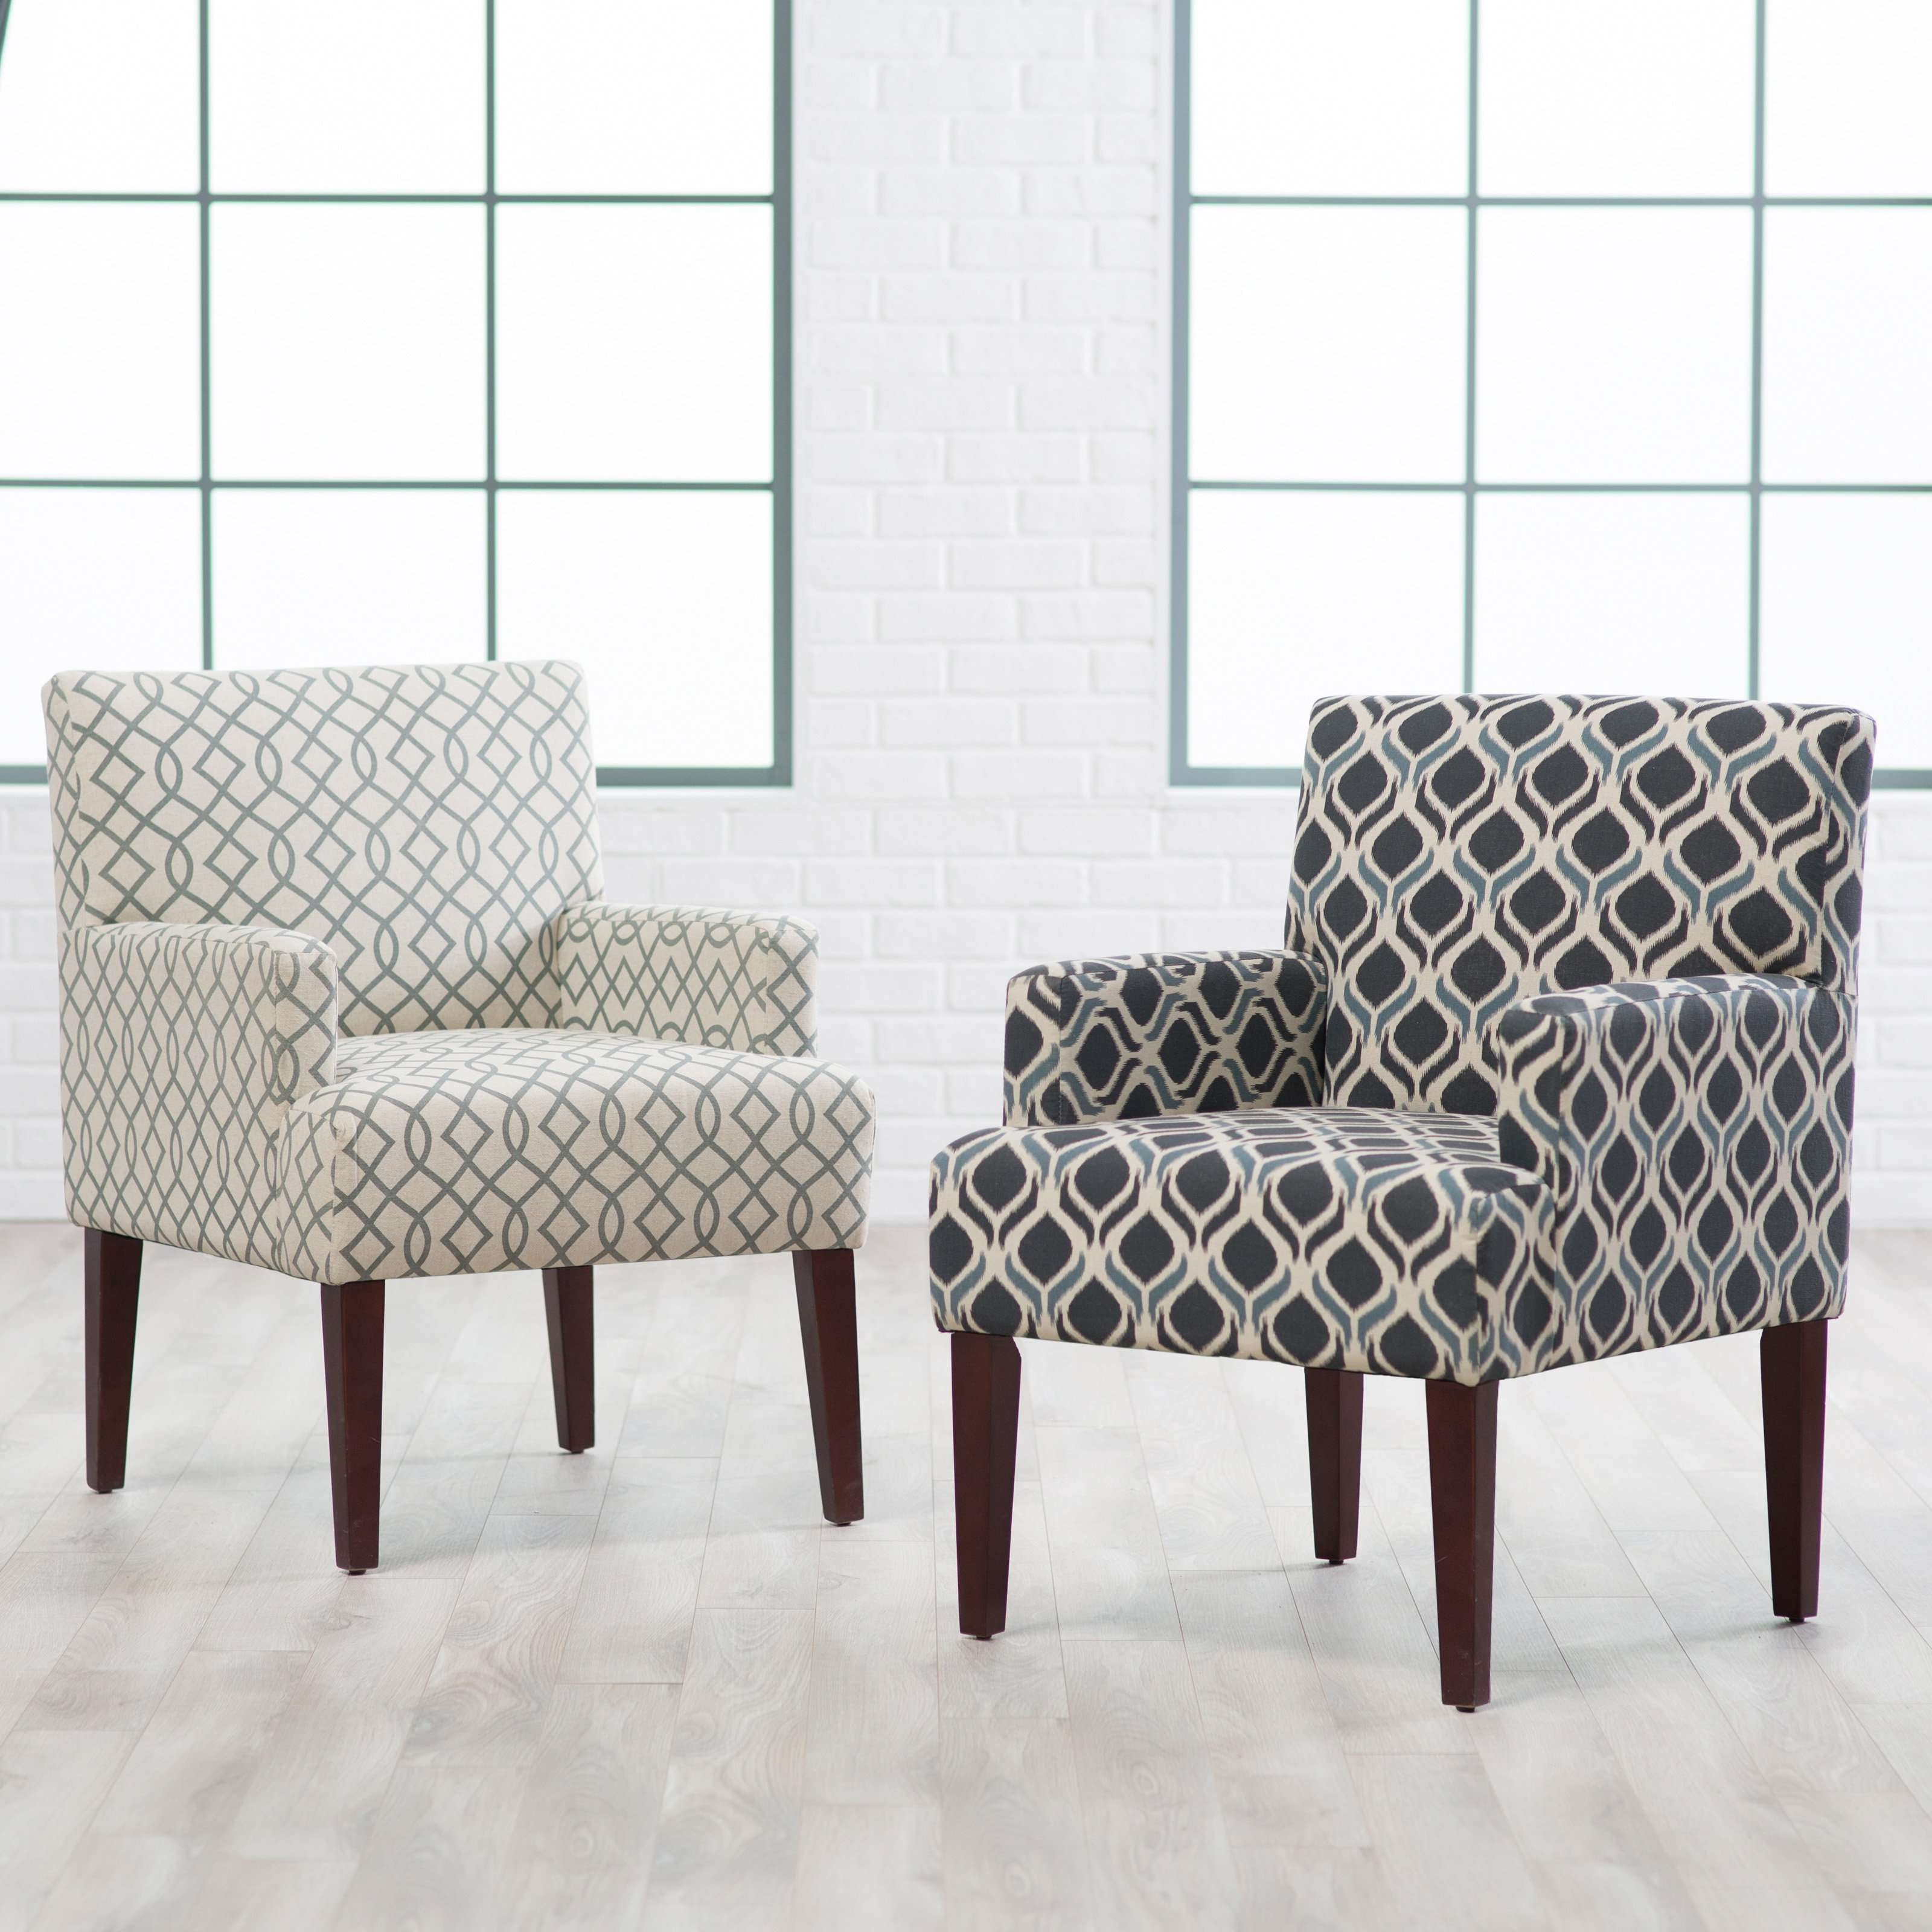 Accent Chairs With Arms Under 100 Luxury Bedroom Chairs For Small For Well Known Rocking Chairs For Small Spaces (View 15 of 15)